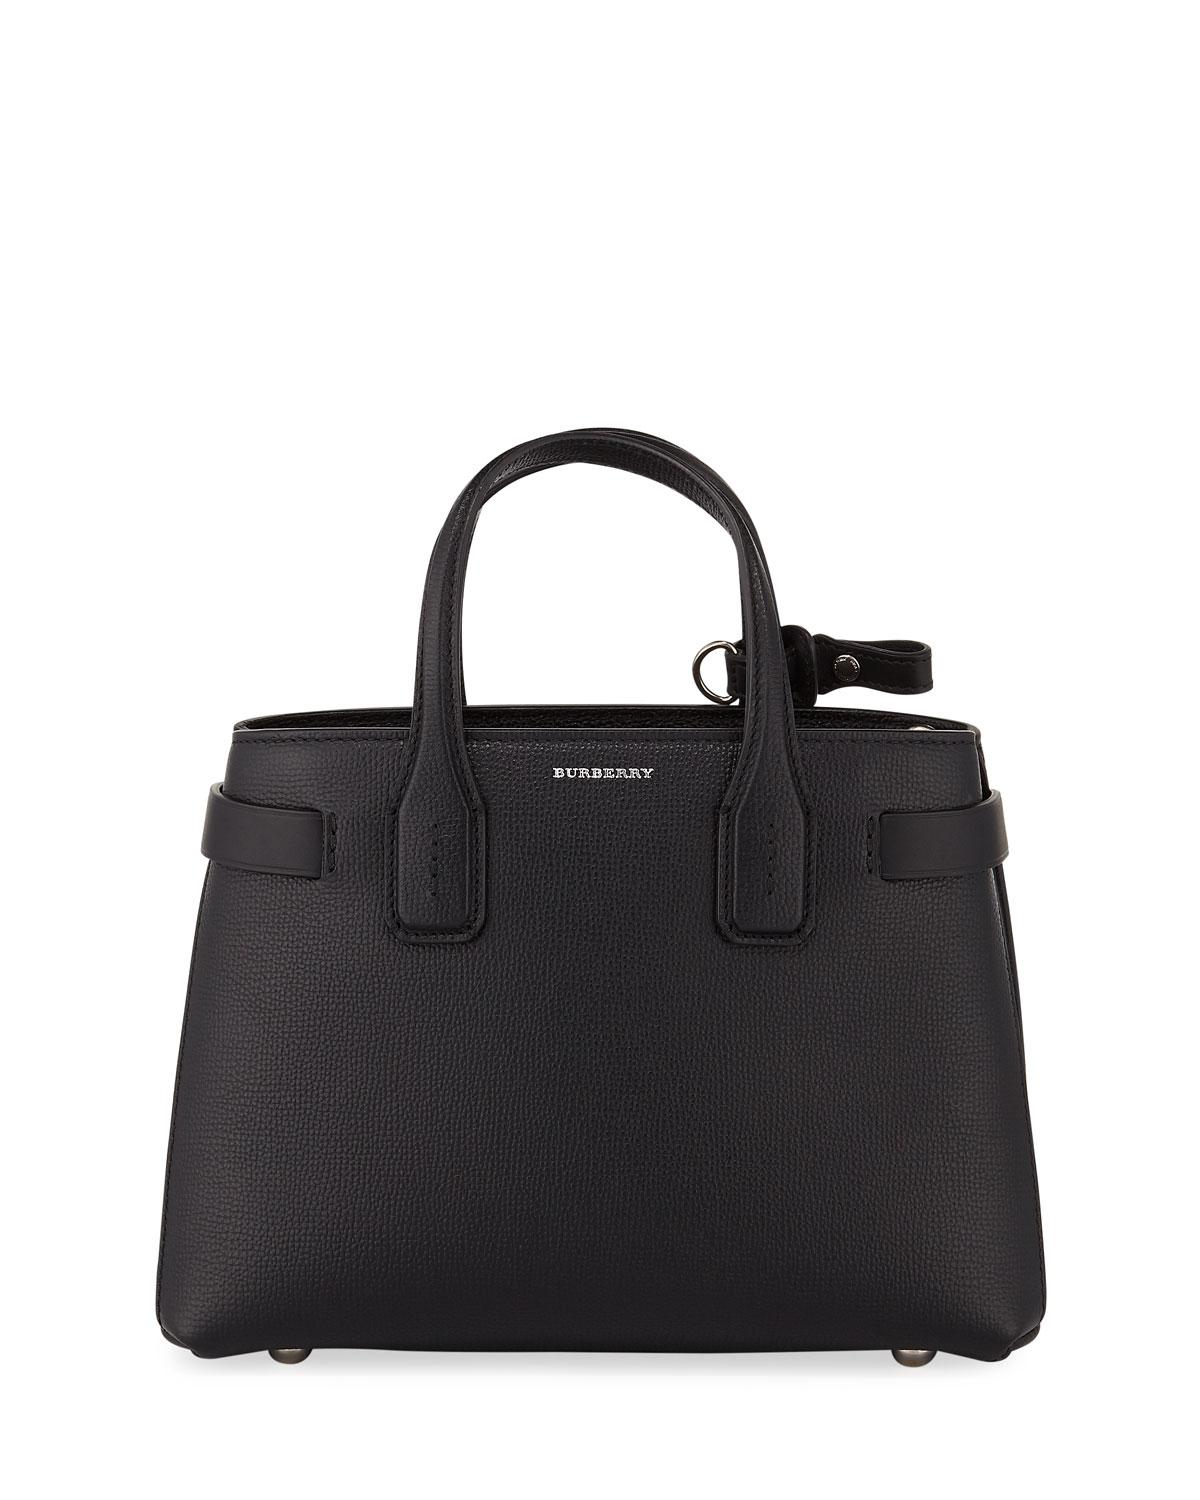 98a808388ffa Burberry - Black Banner Small Leather Tote Bag - Lyst. View fullscreen